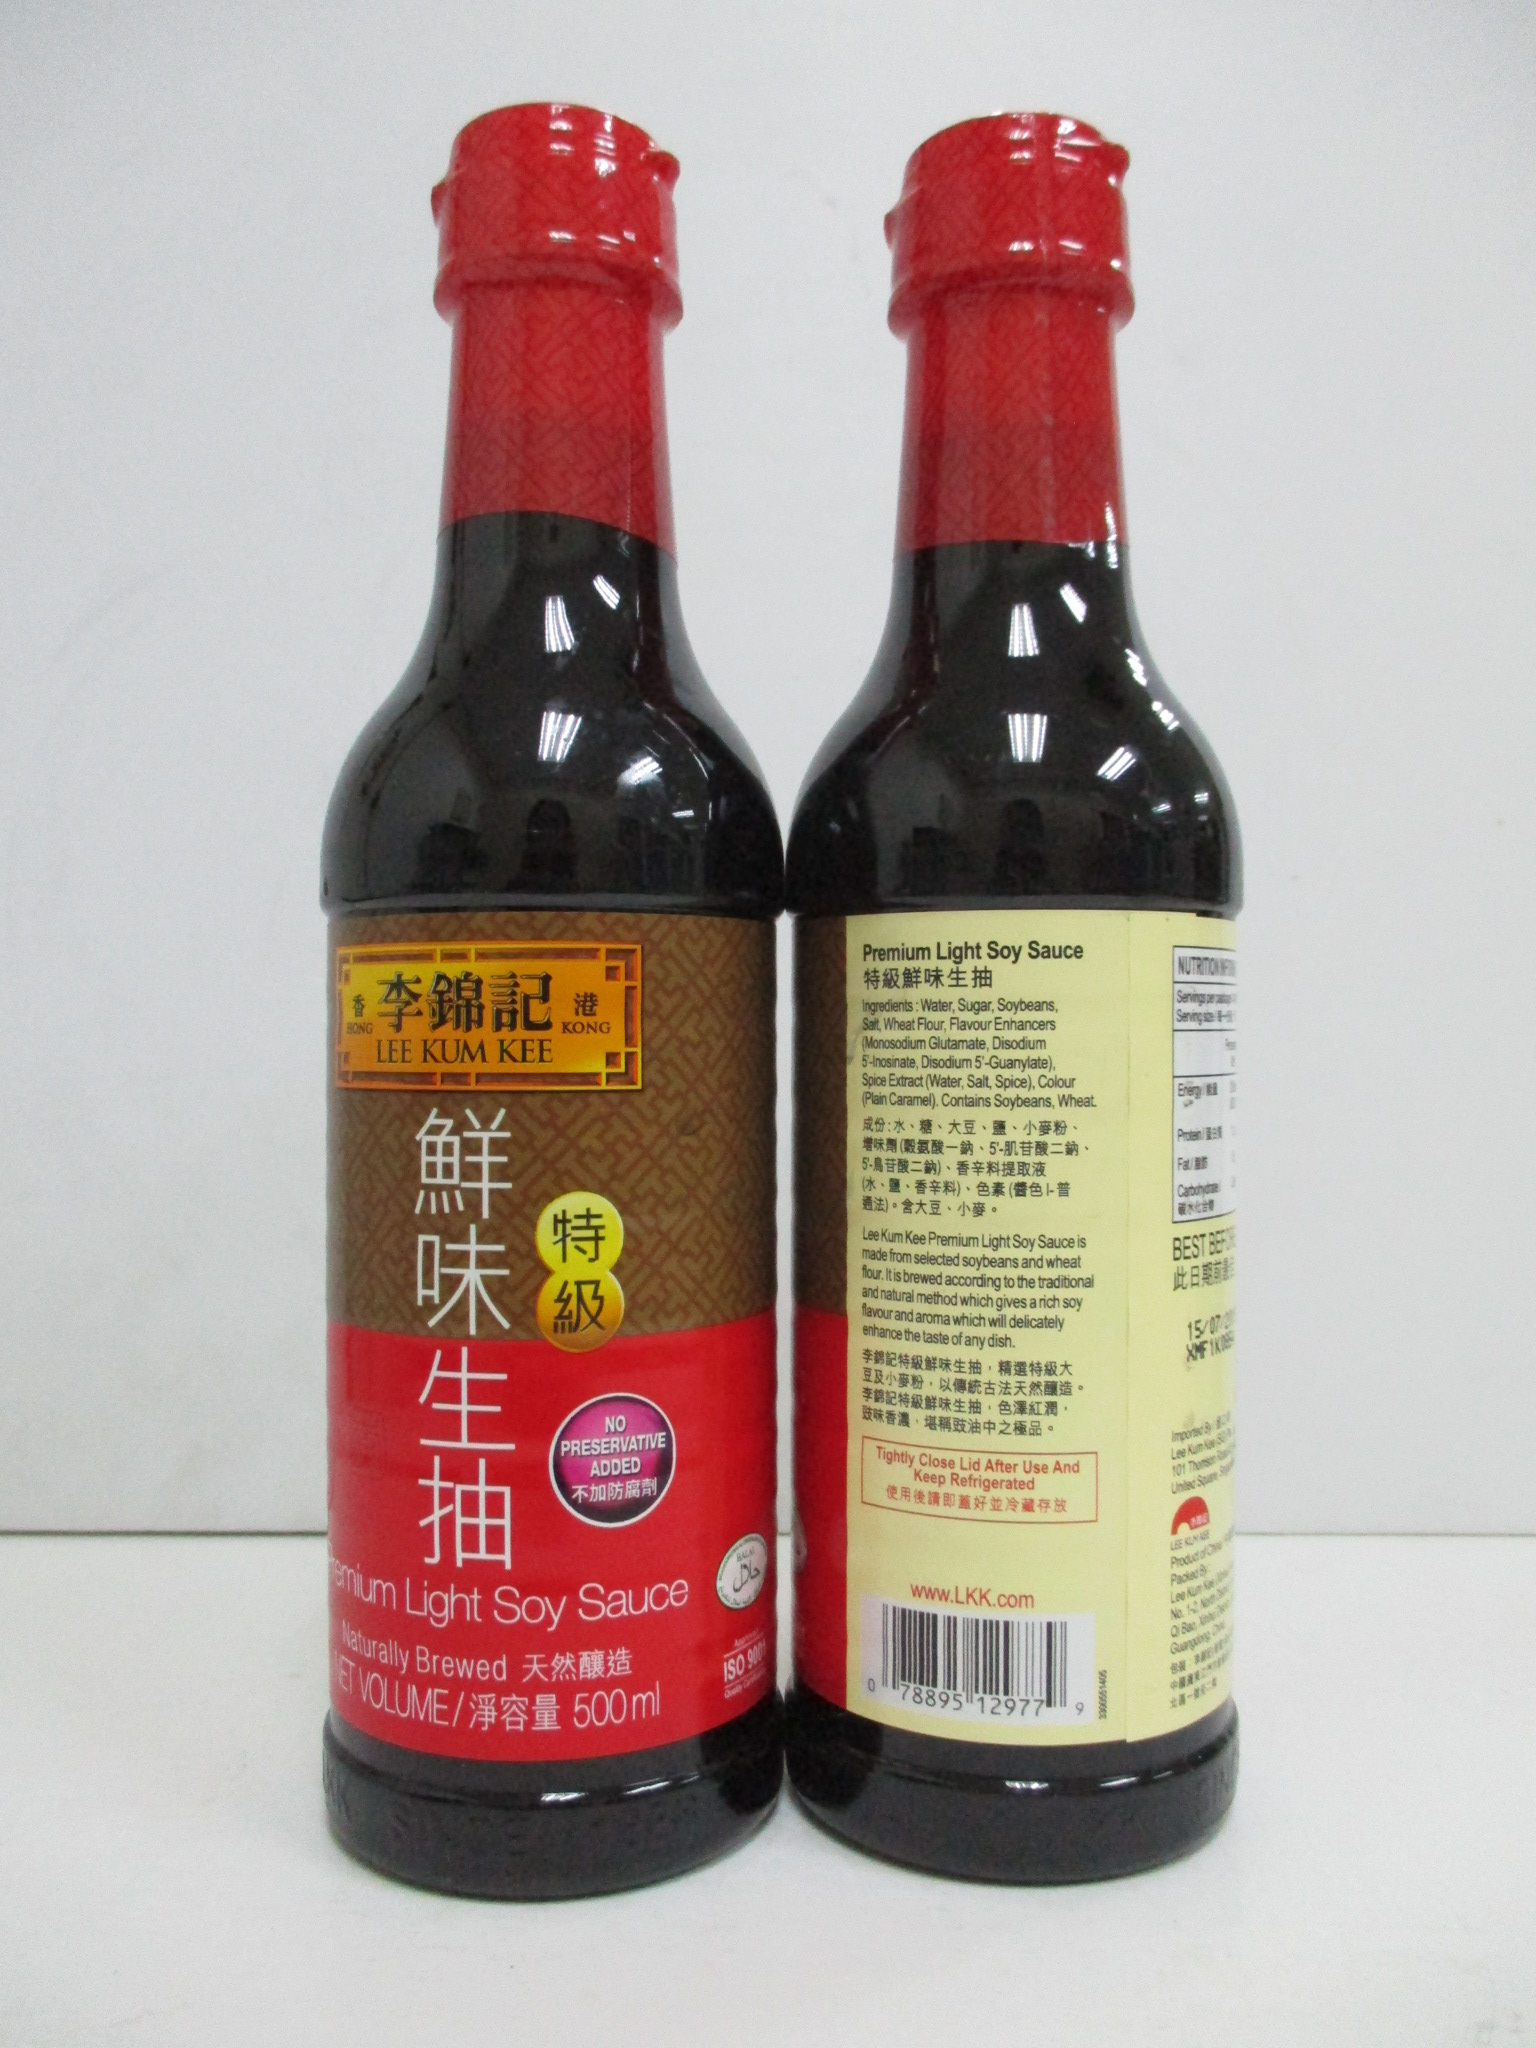 LKK Premium Light Soy Sauce 12 x 500ml